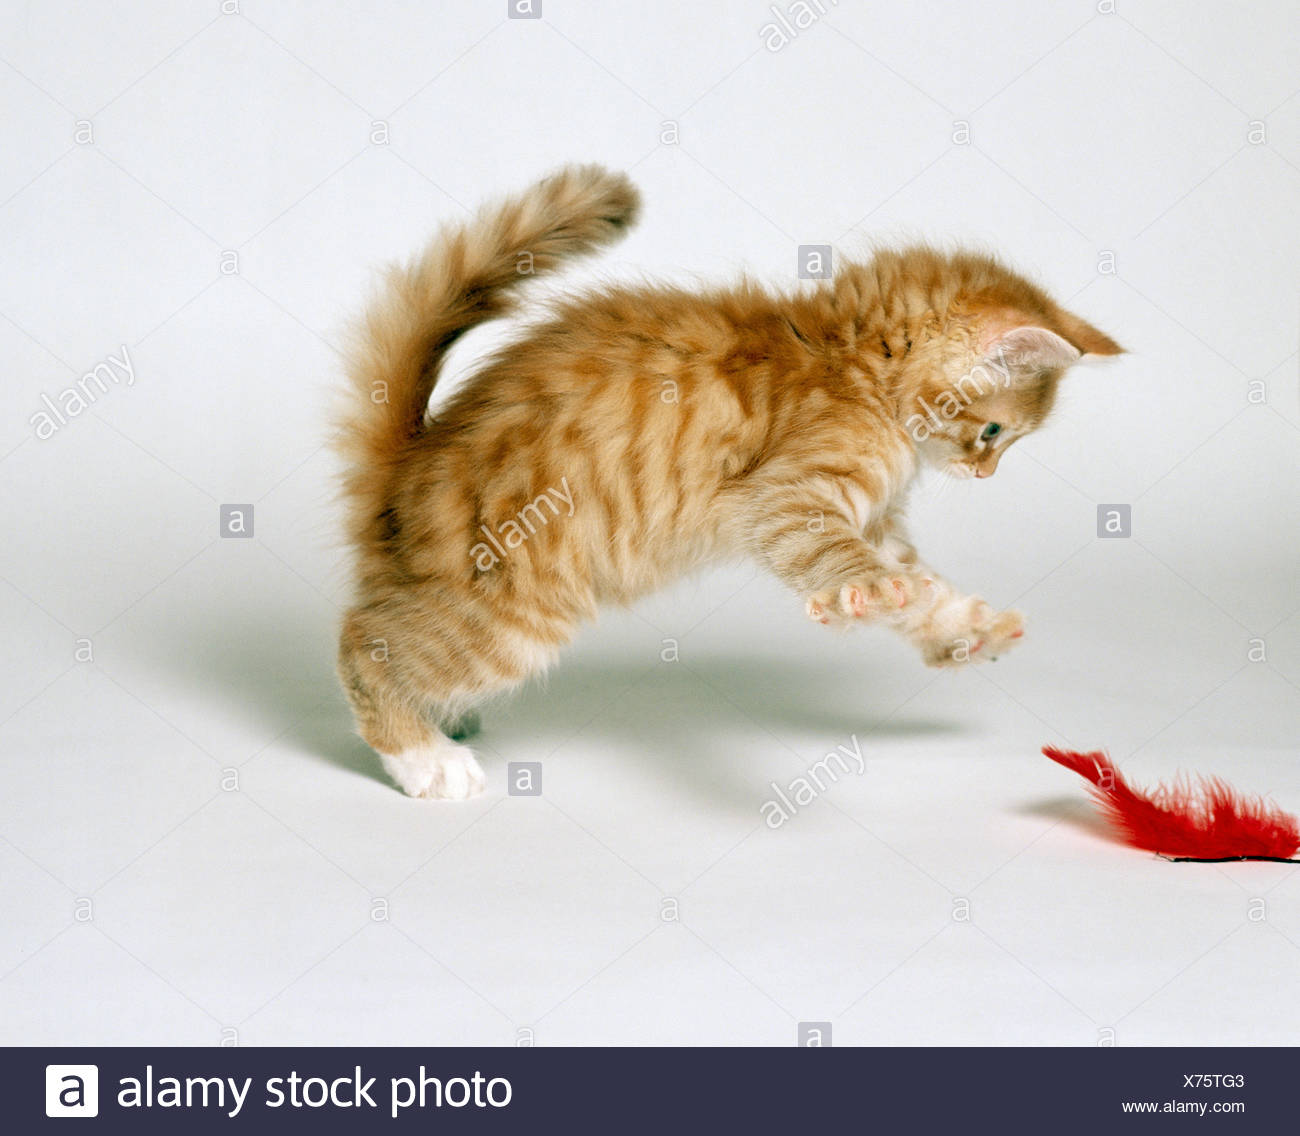 Angora Cat Kitten Playing With Feather Stock Photo 279797507 Alamy